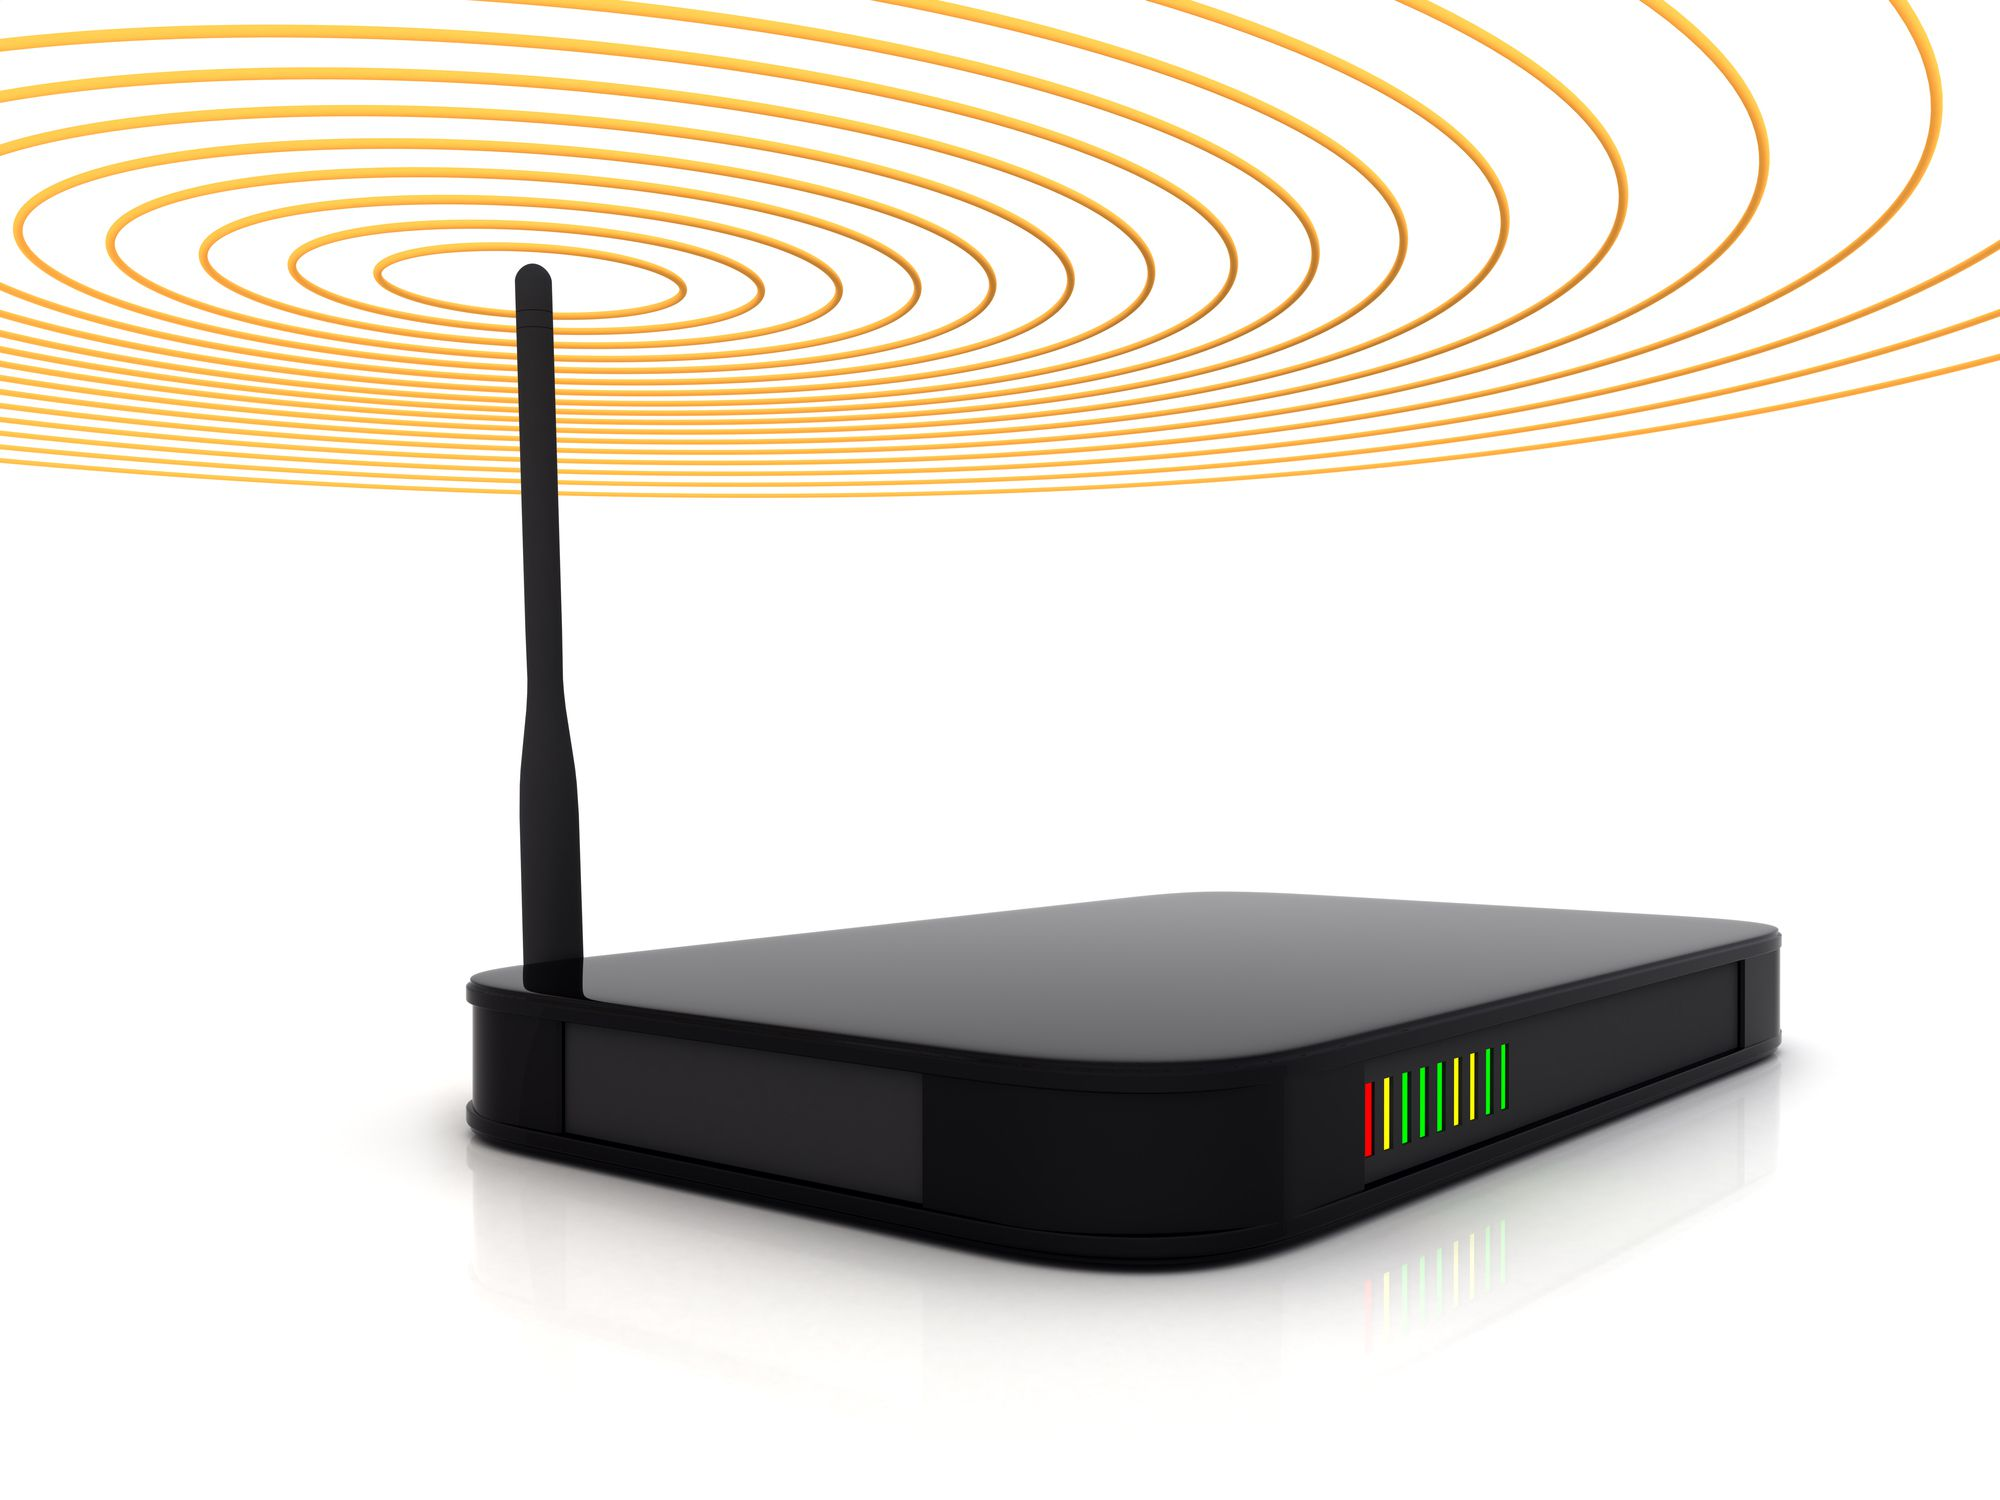 hight resolution of wireles n home router diagram